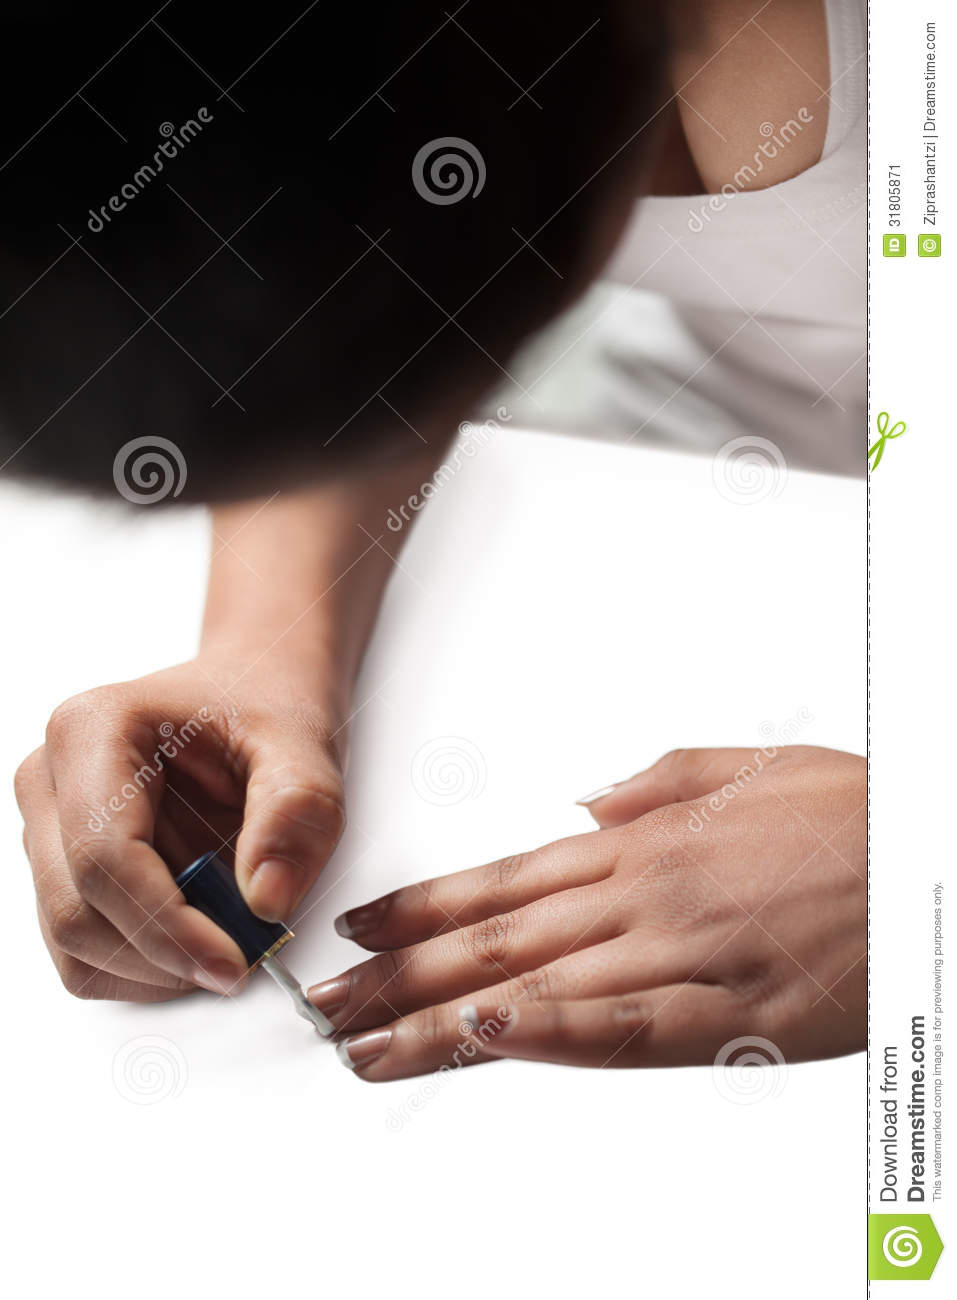 Painting Nails Stock Image